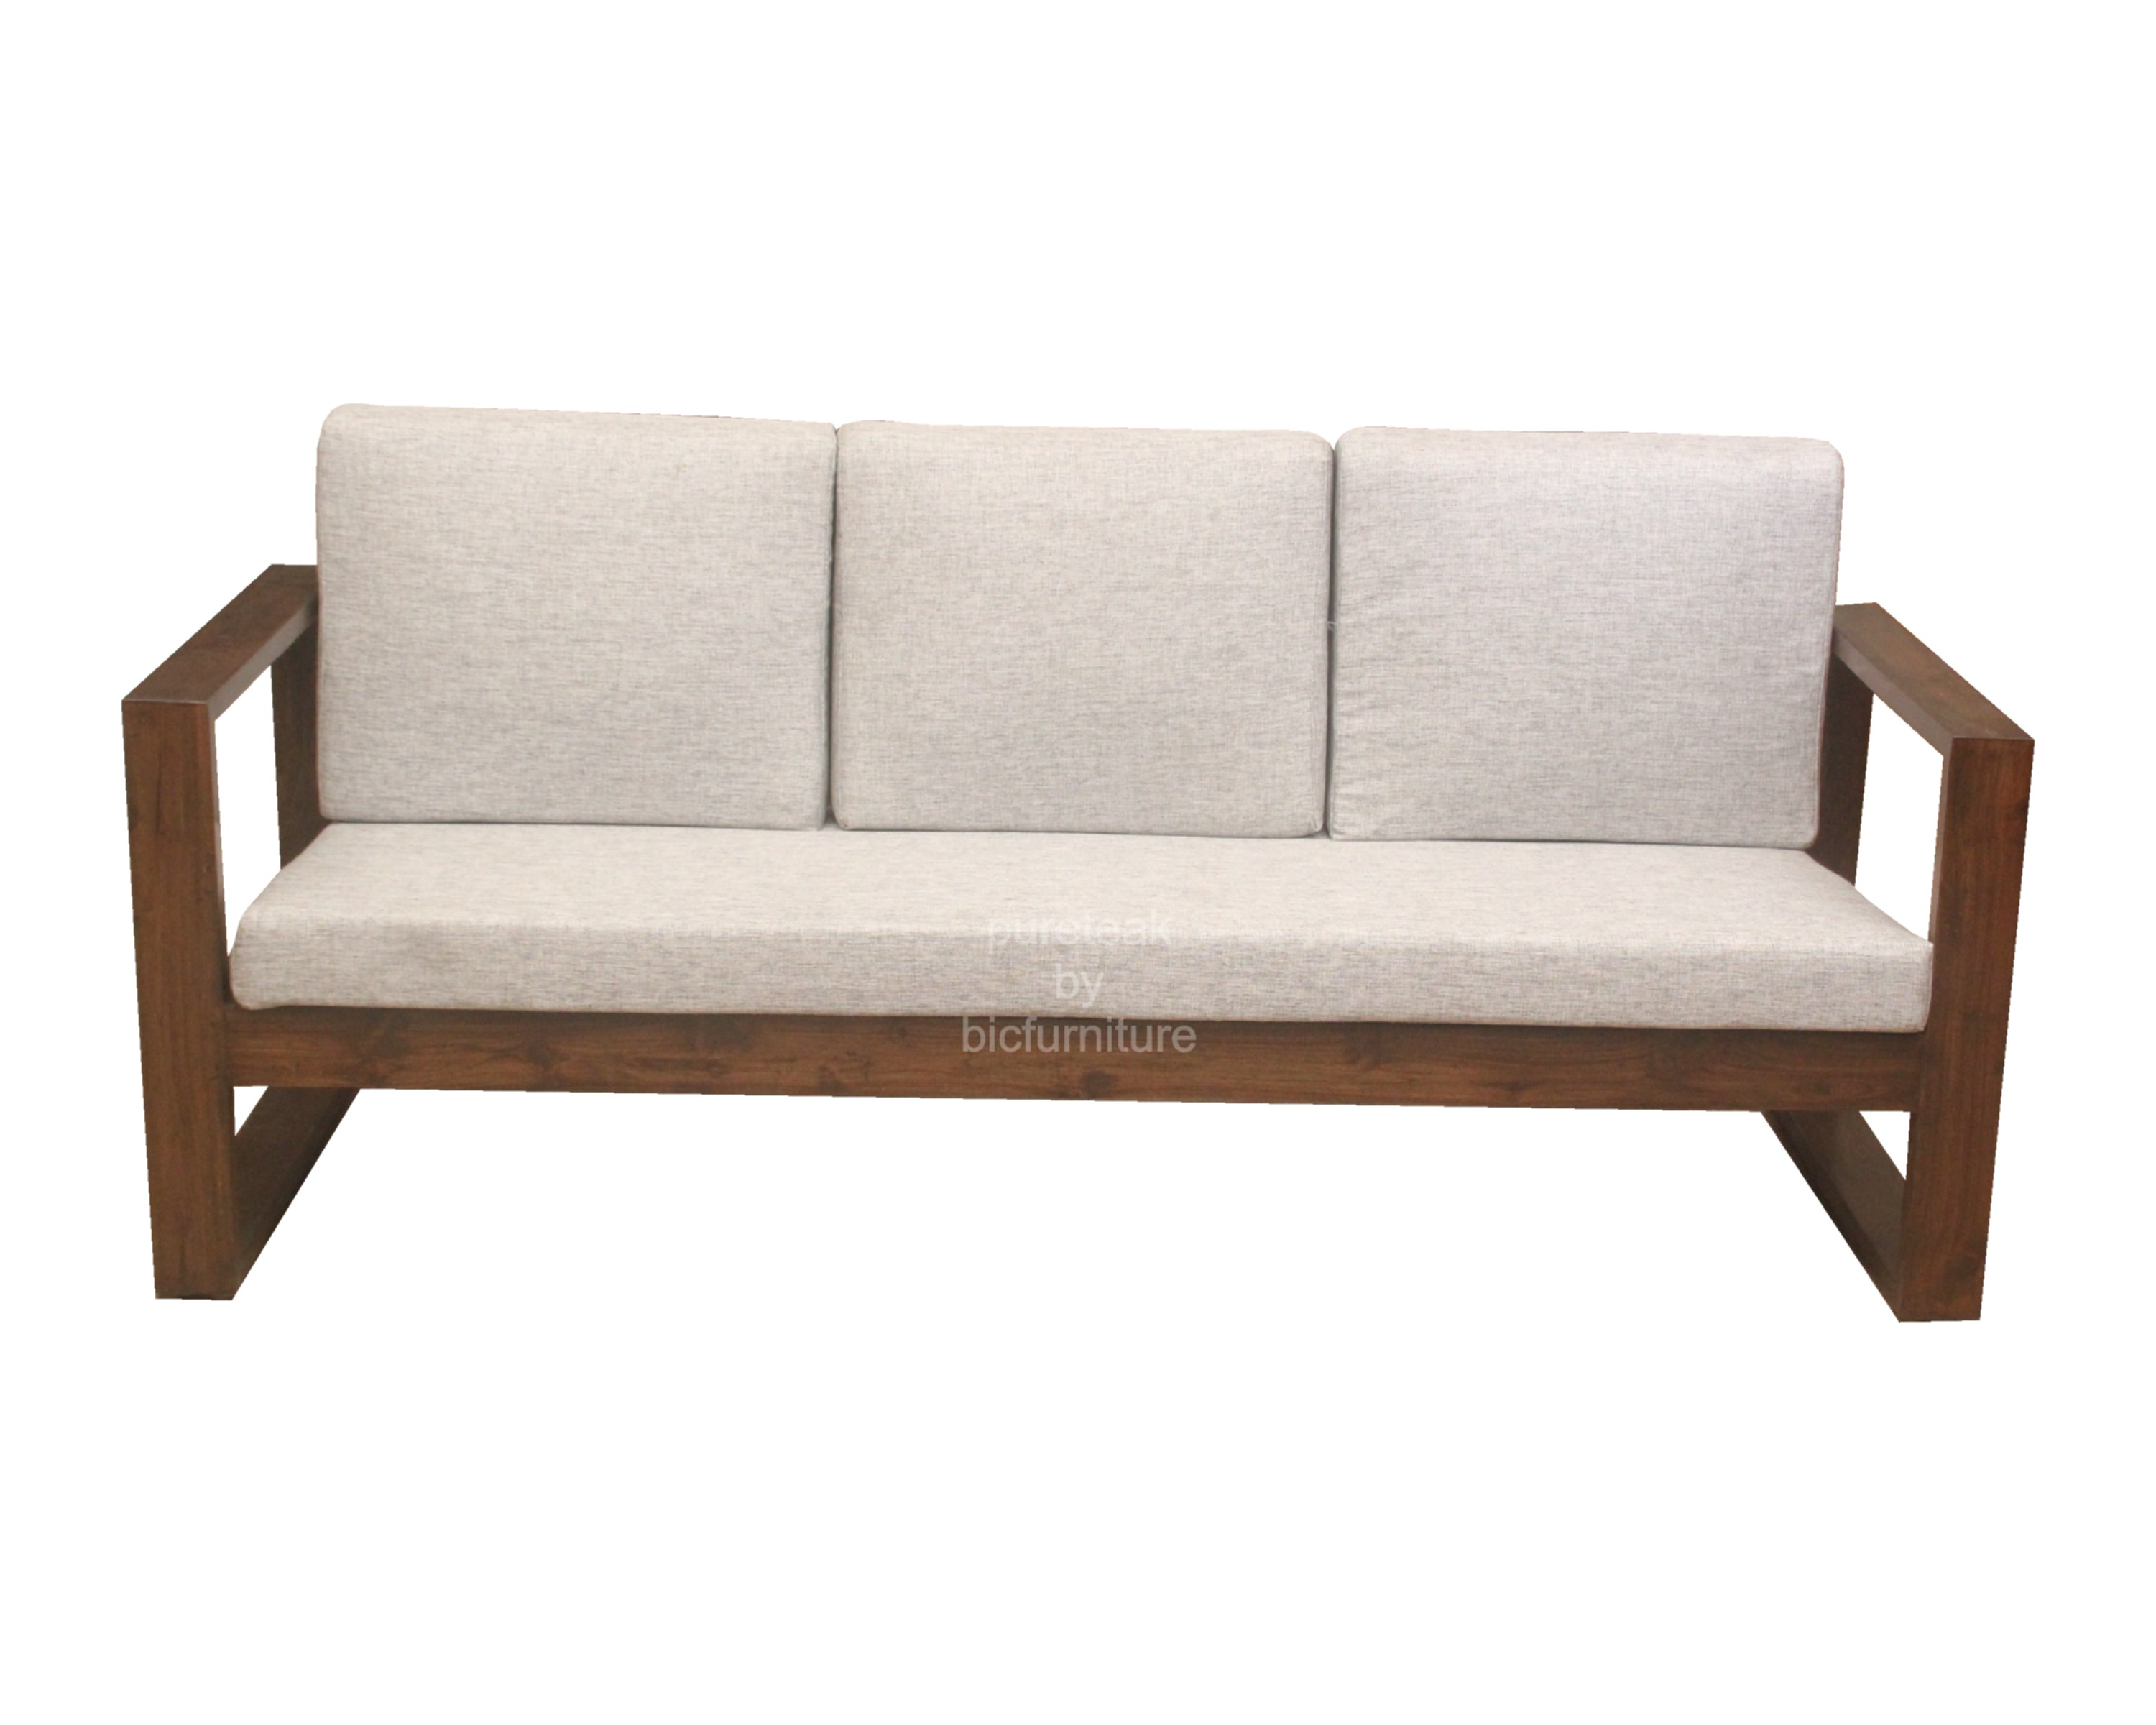 Simple Sofa 18 Modern Sofa Options For Every Budget Real Simple Thesofa